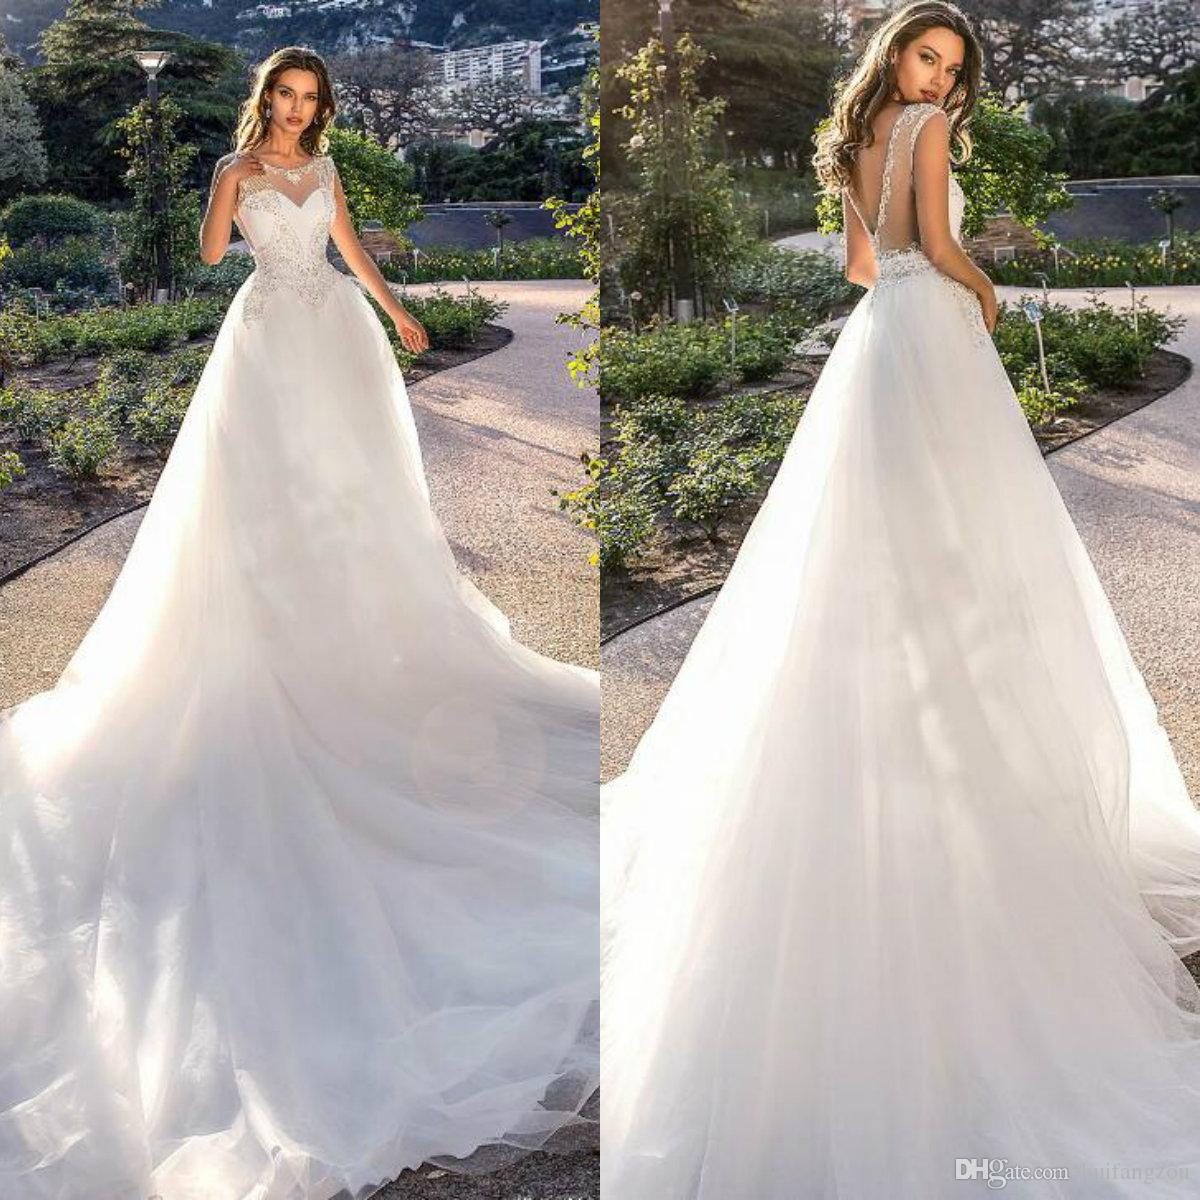 4ad25d385c6 Discount Tina Valerdi 2019 Wedding Dress Sheer Jewel Neck See Through  Crystal Design Tulle Bridal Gowns Custom Made Cheap Simple Wedding Dresses  Christian ...